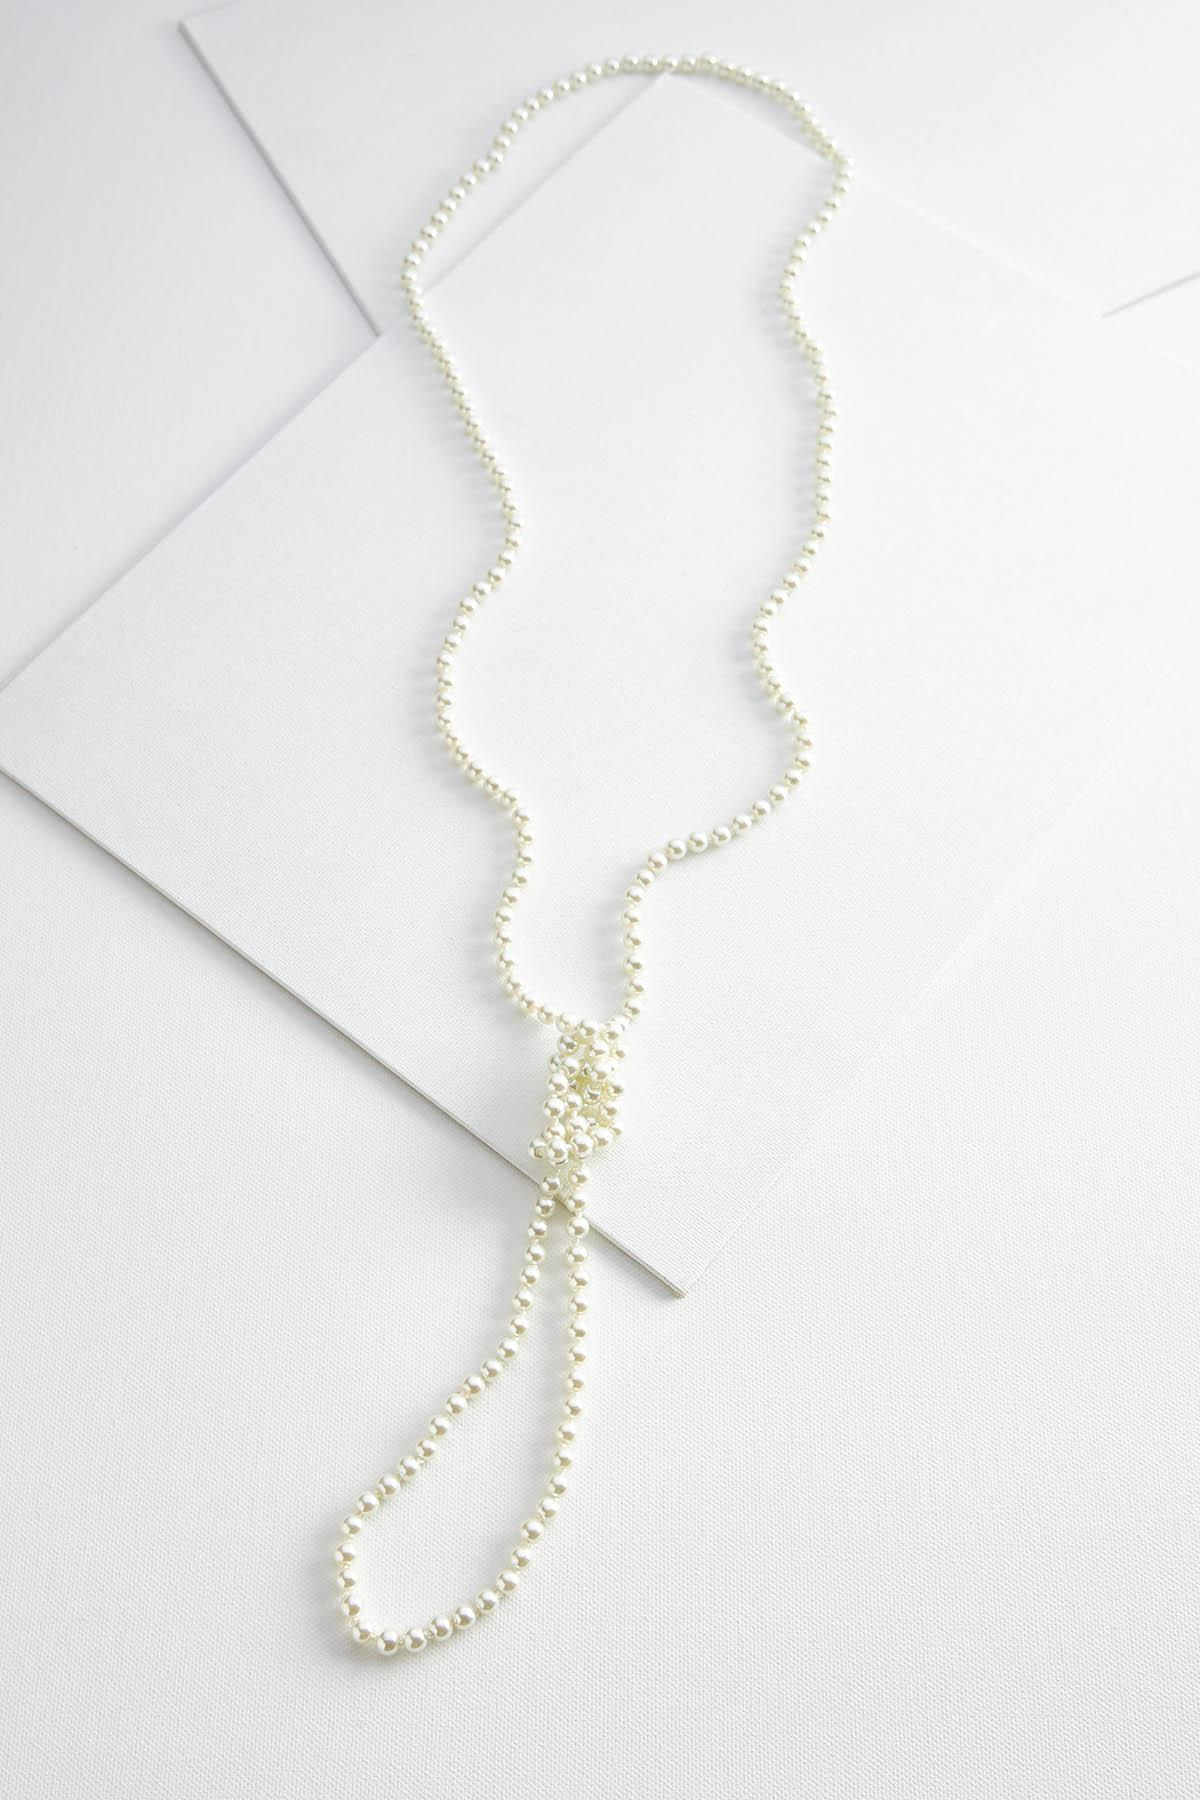 Knotted Pearl Rope Necklace